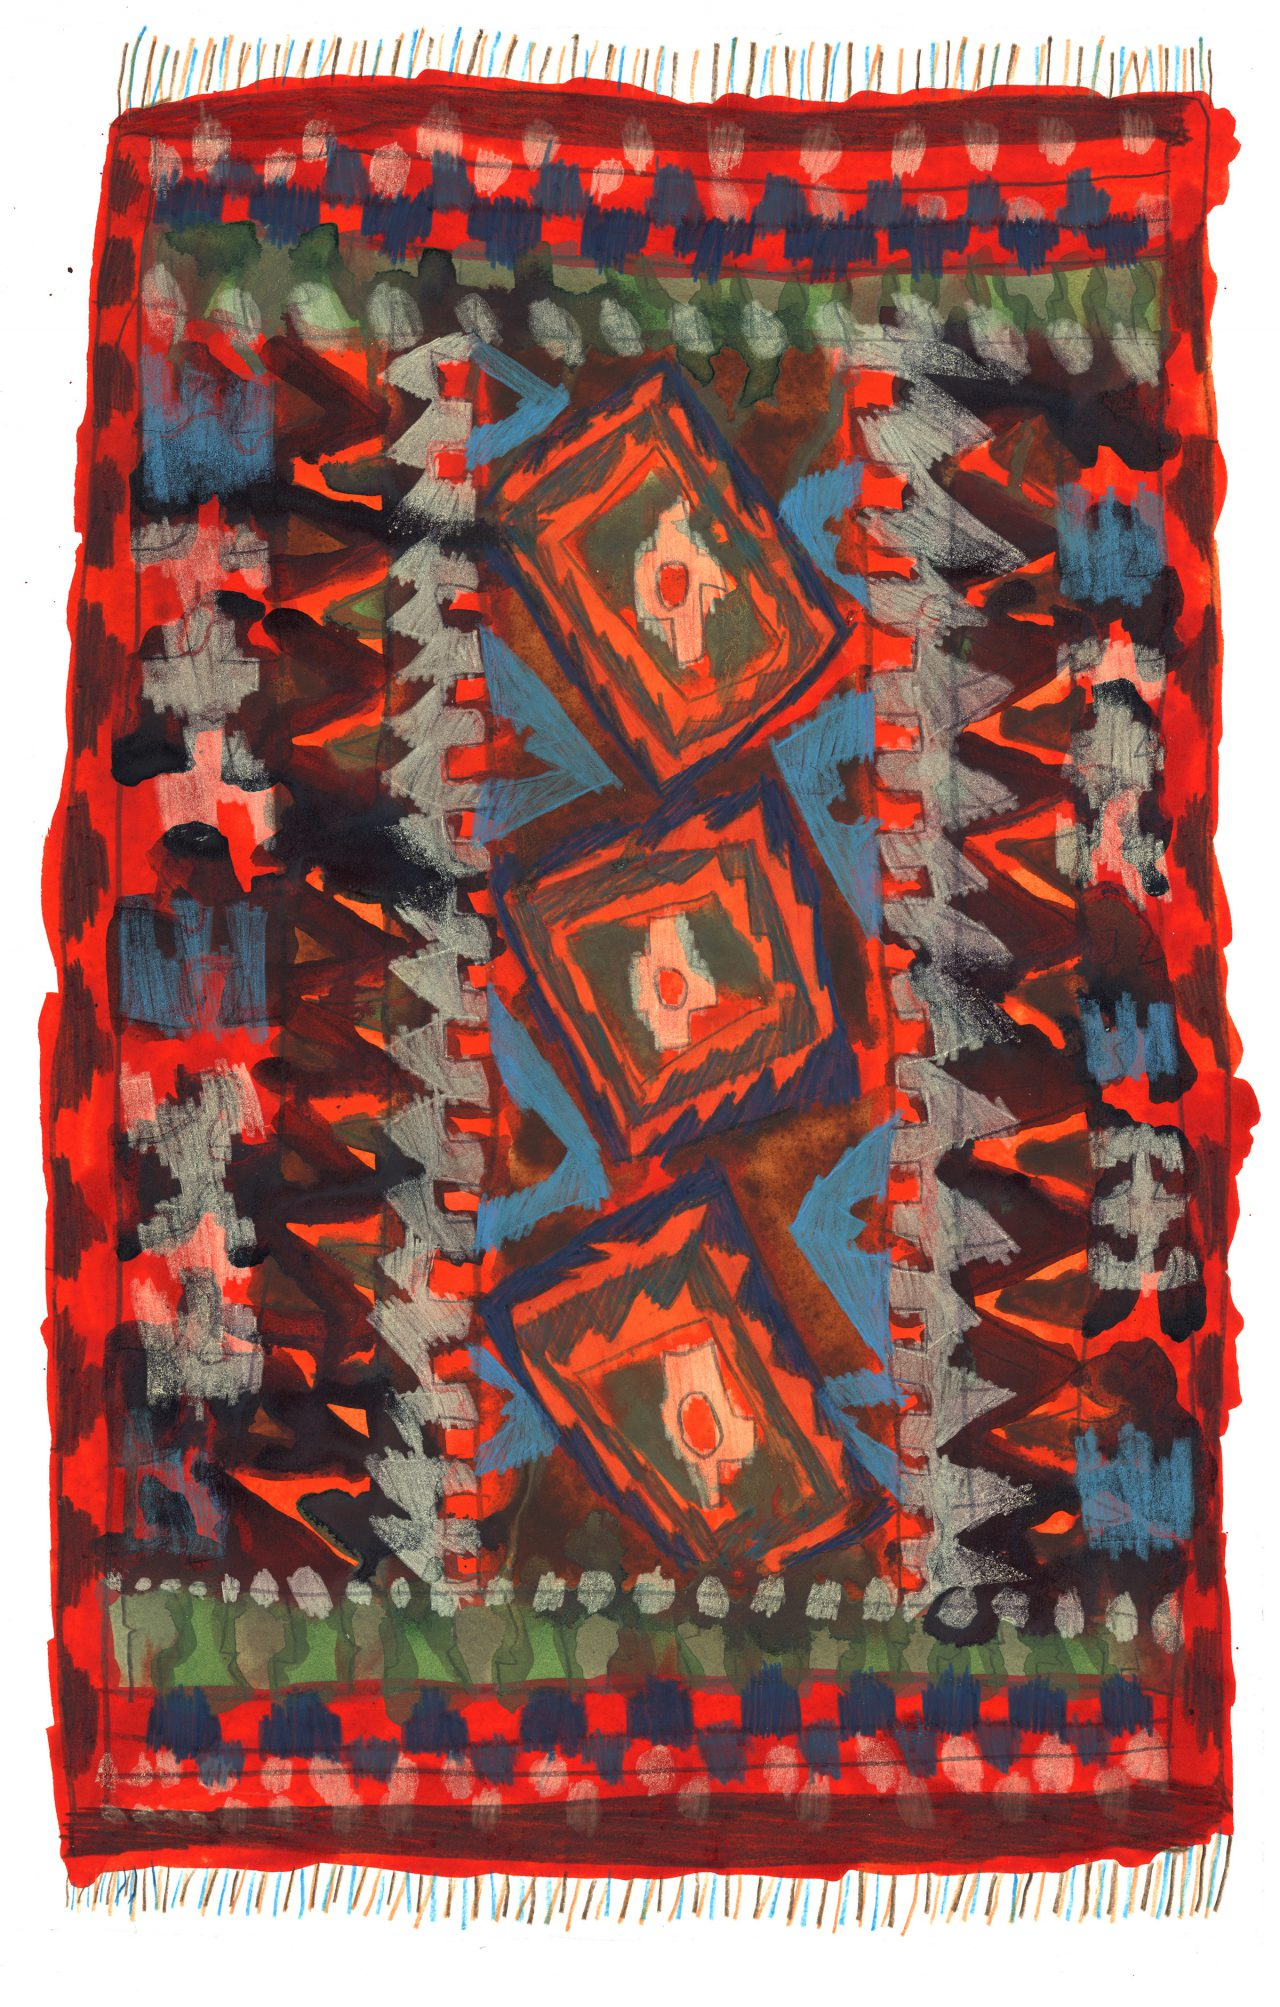 yoshiko-phillips-rug-from-afghanistan-2016